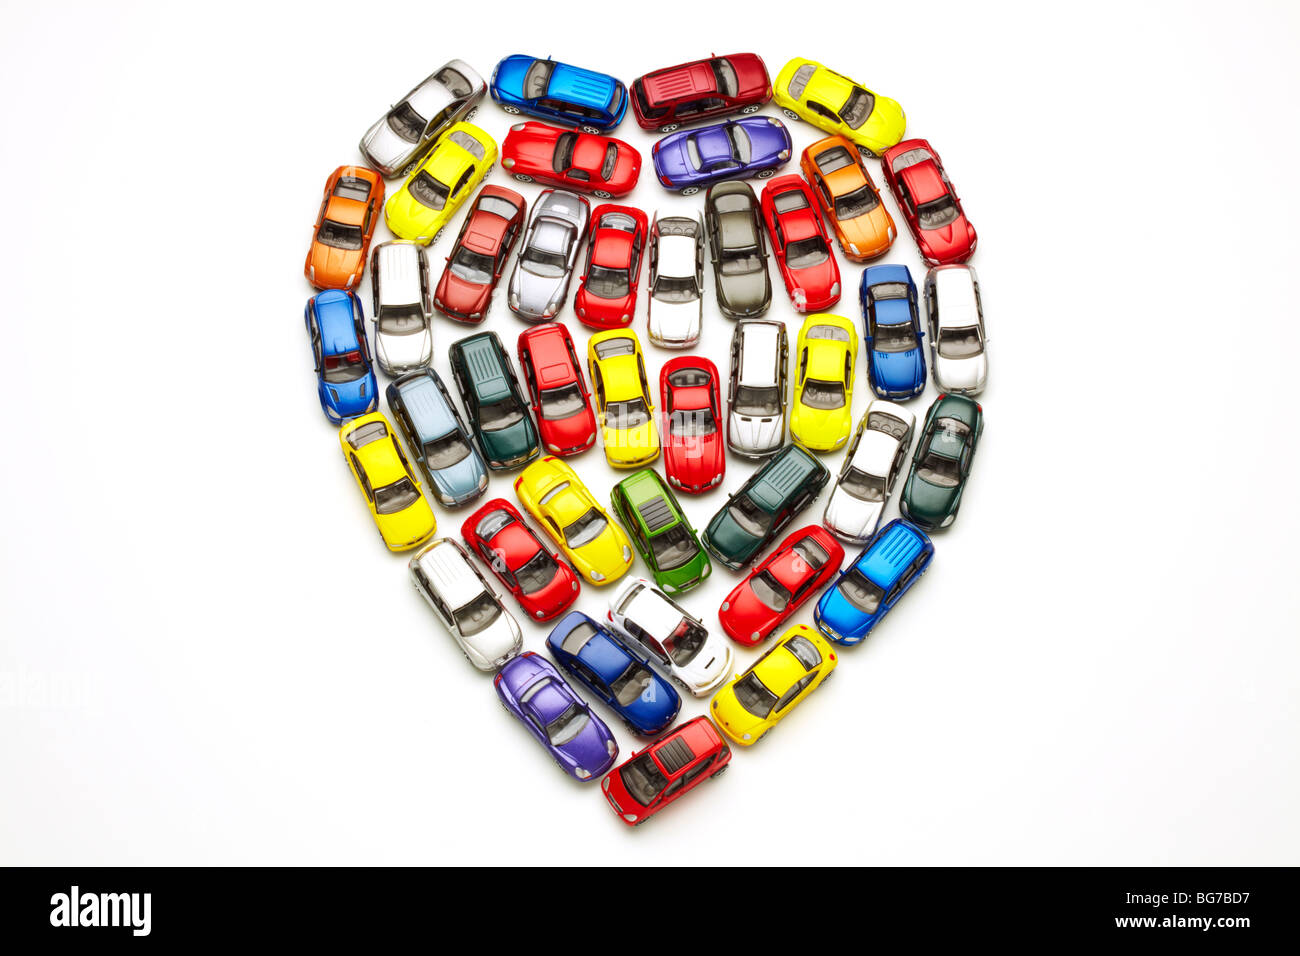 Model Cars in Heart Shape - Stock Image